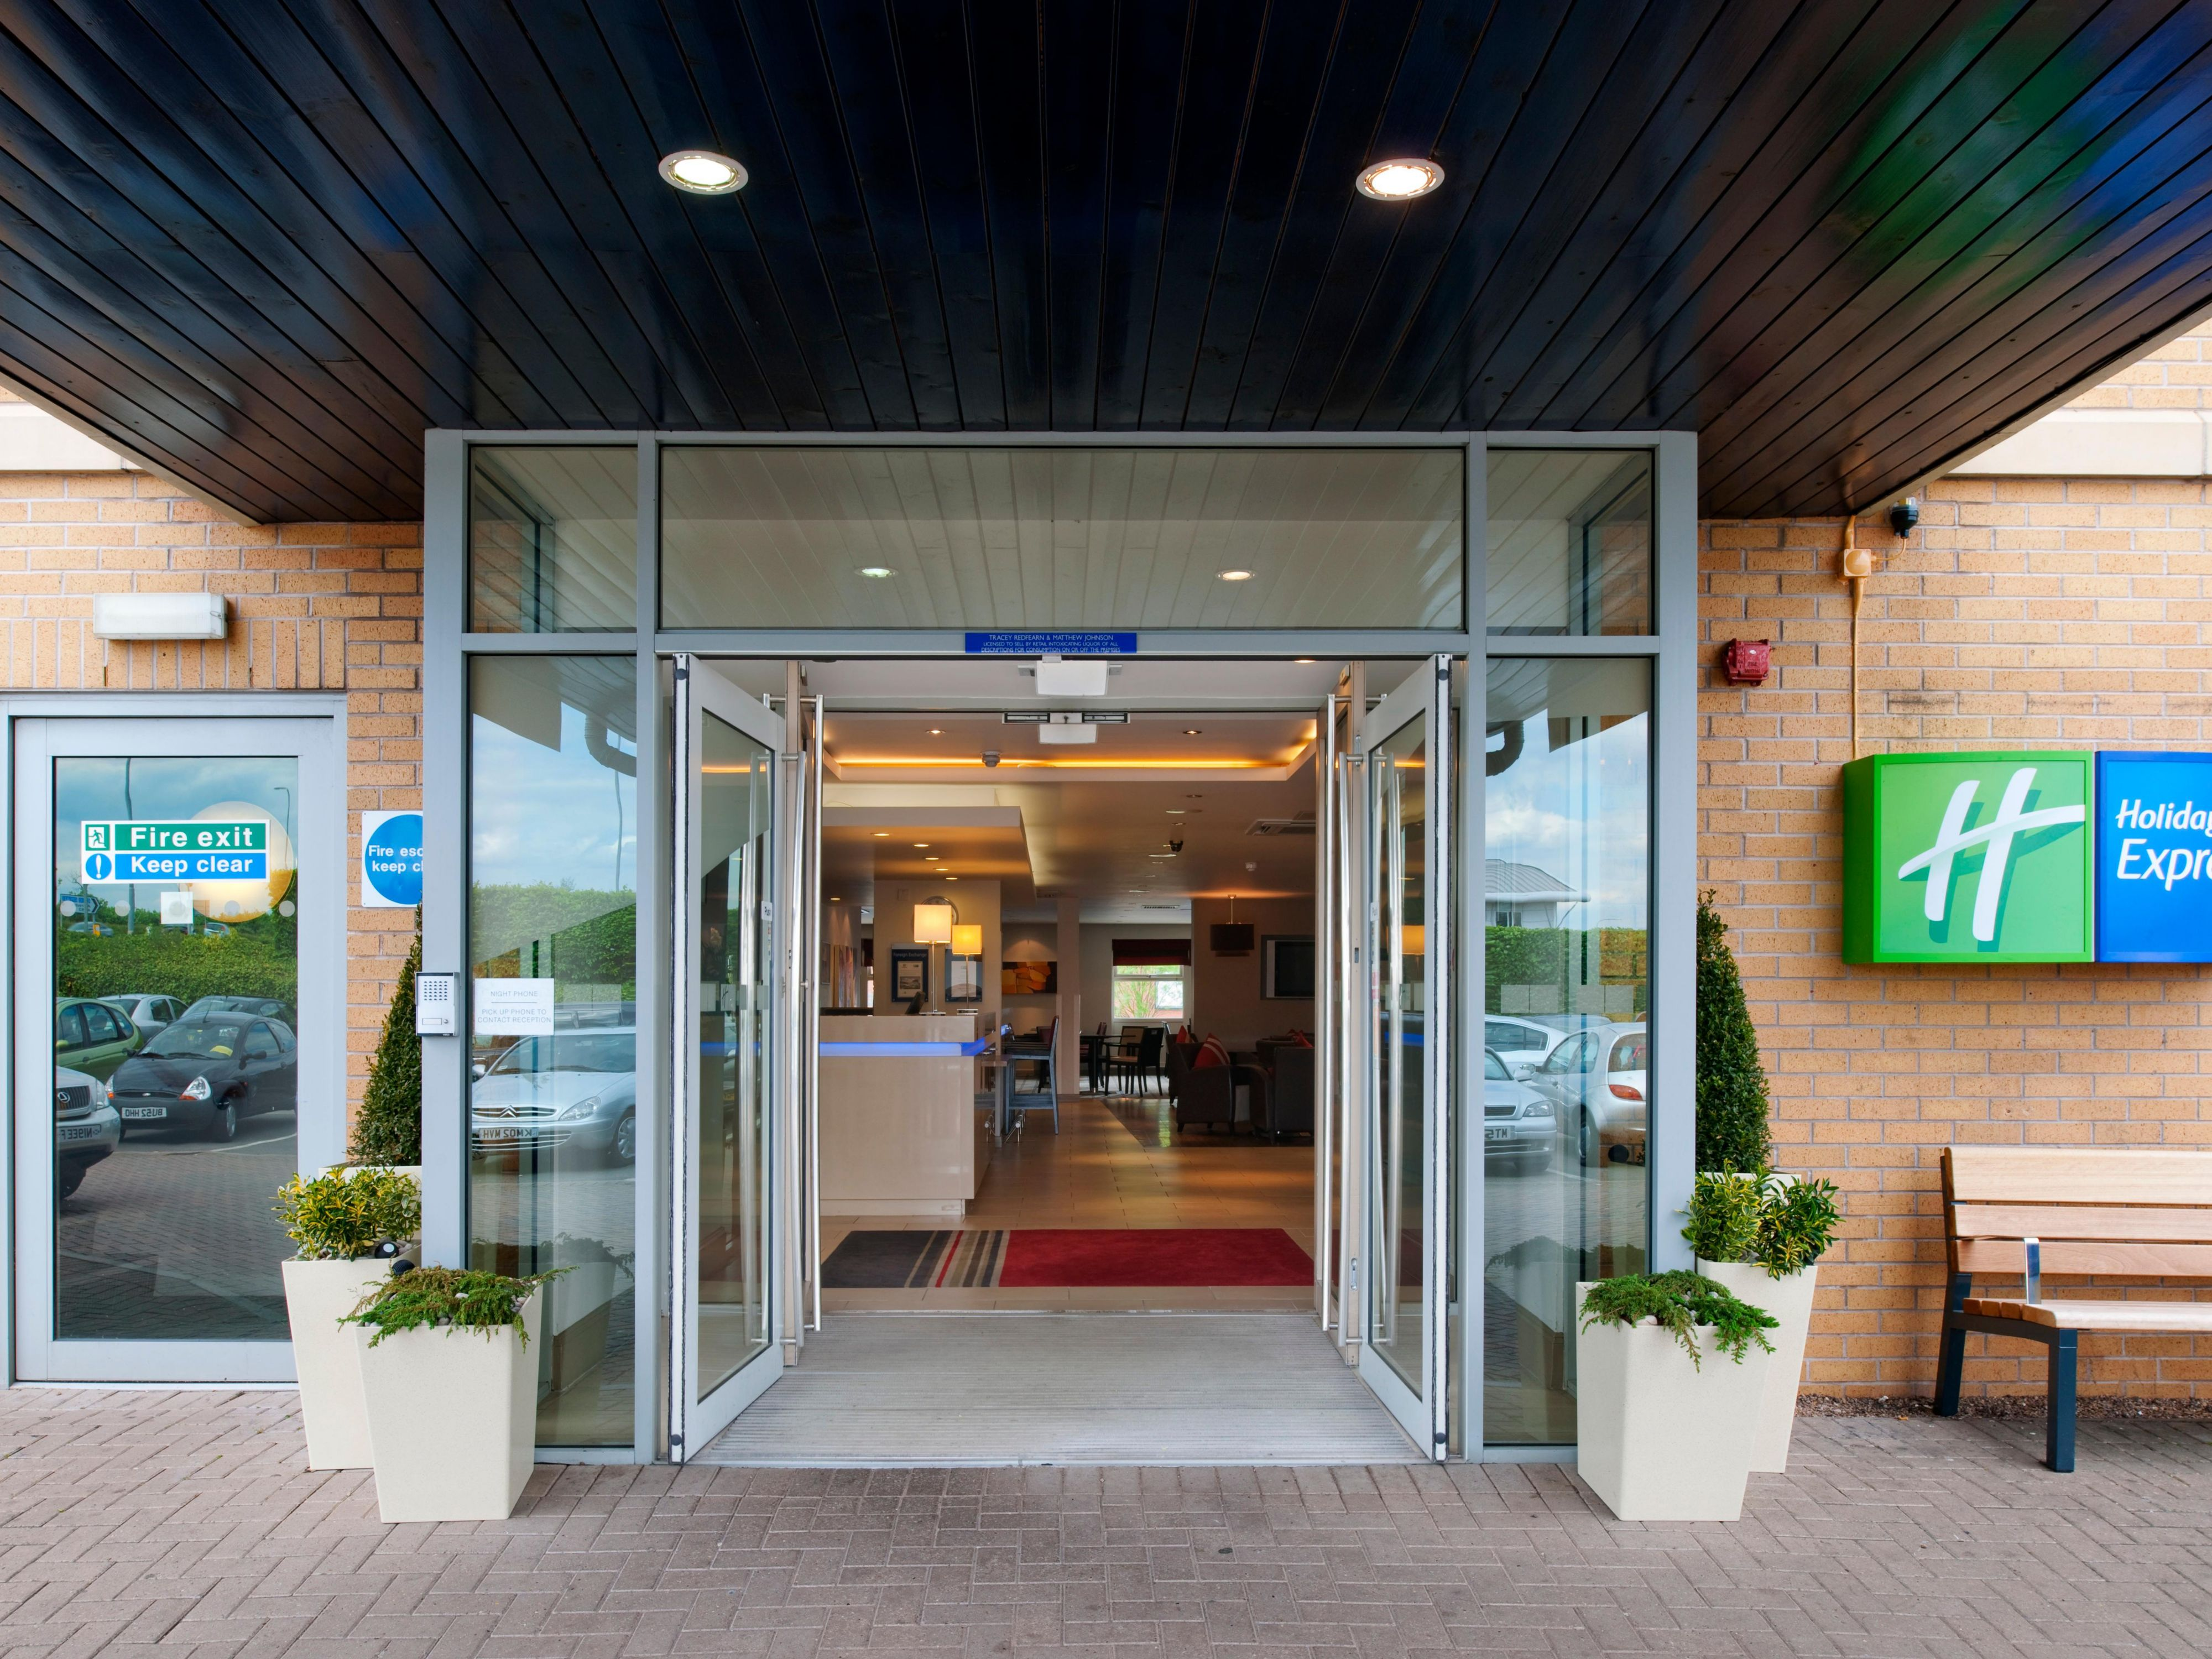 A warm welcome awaits at Holiday Inn Express East Midlands Airport